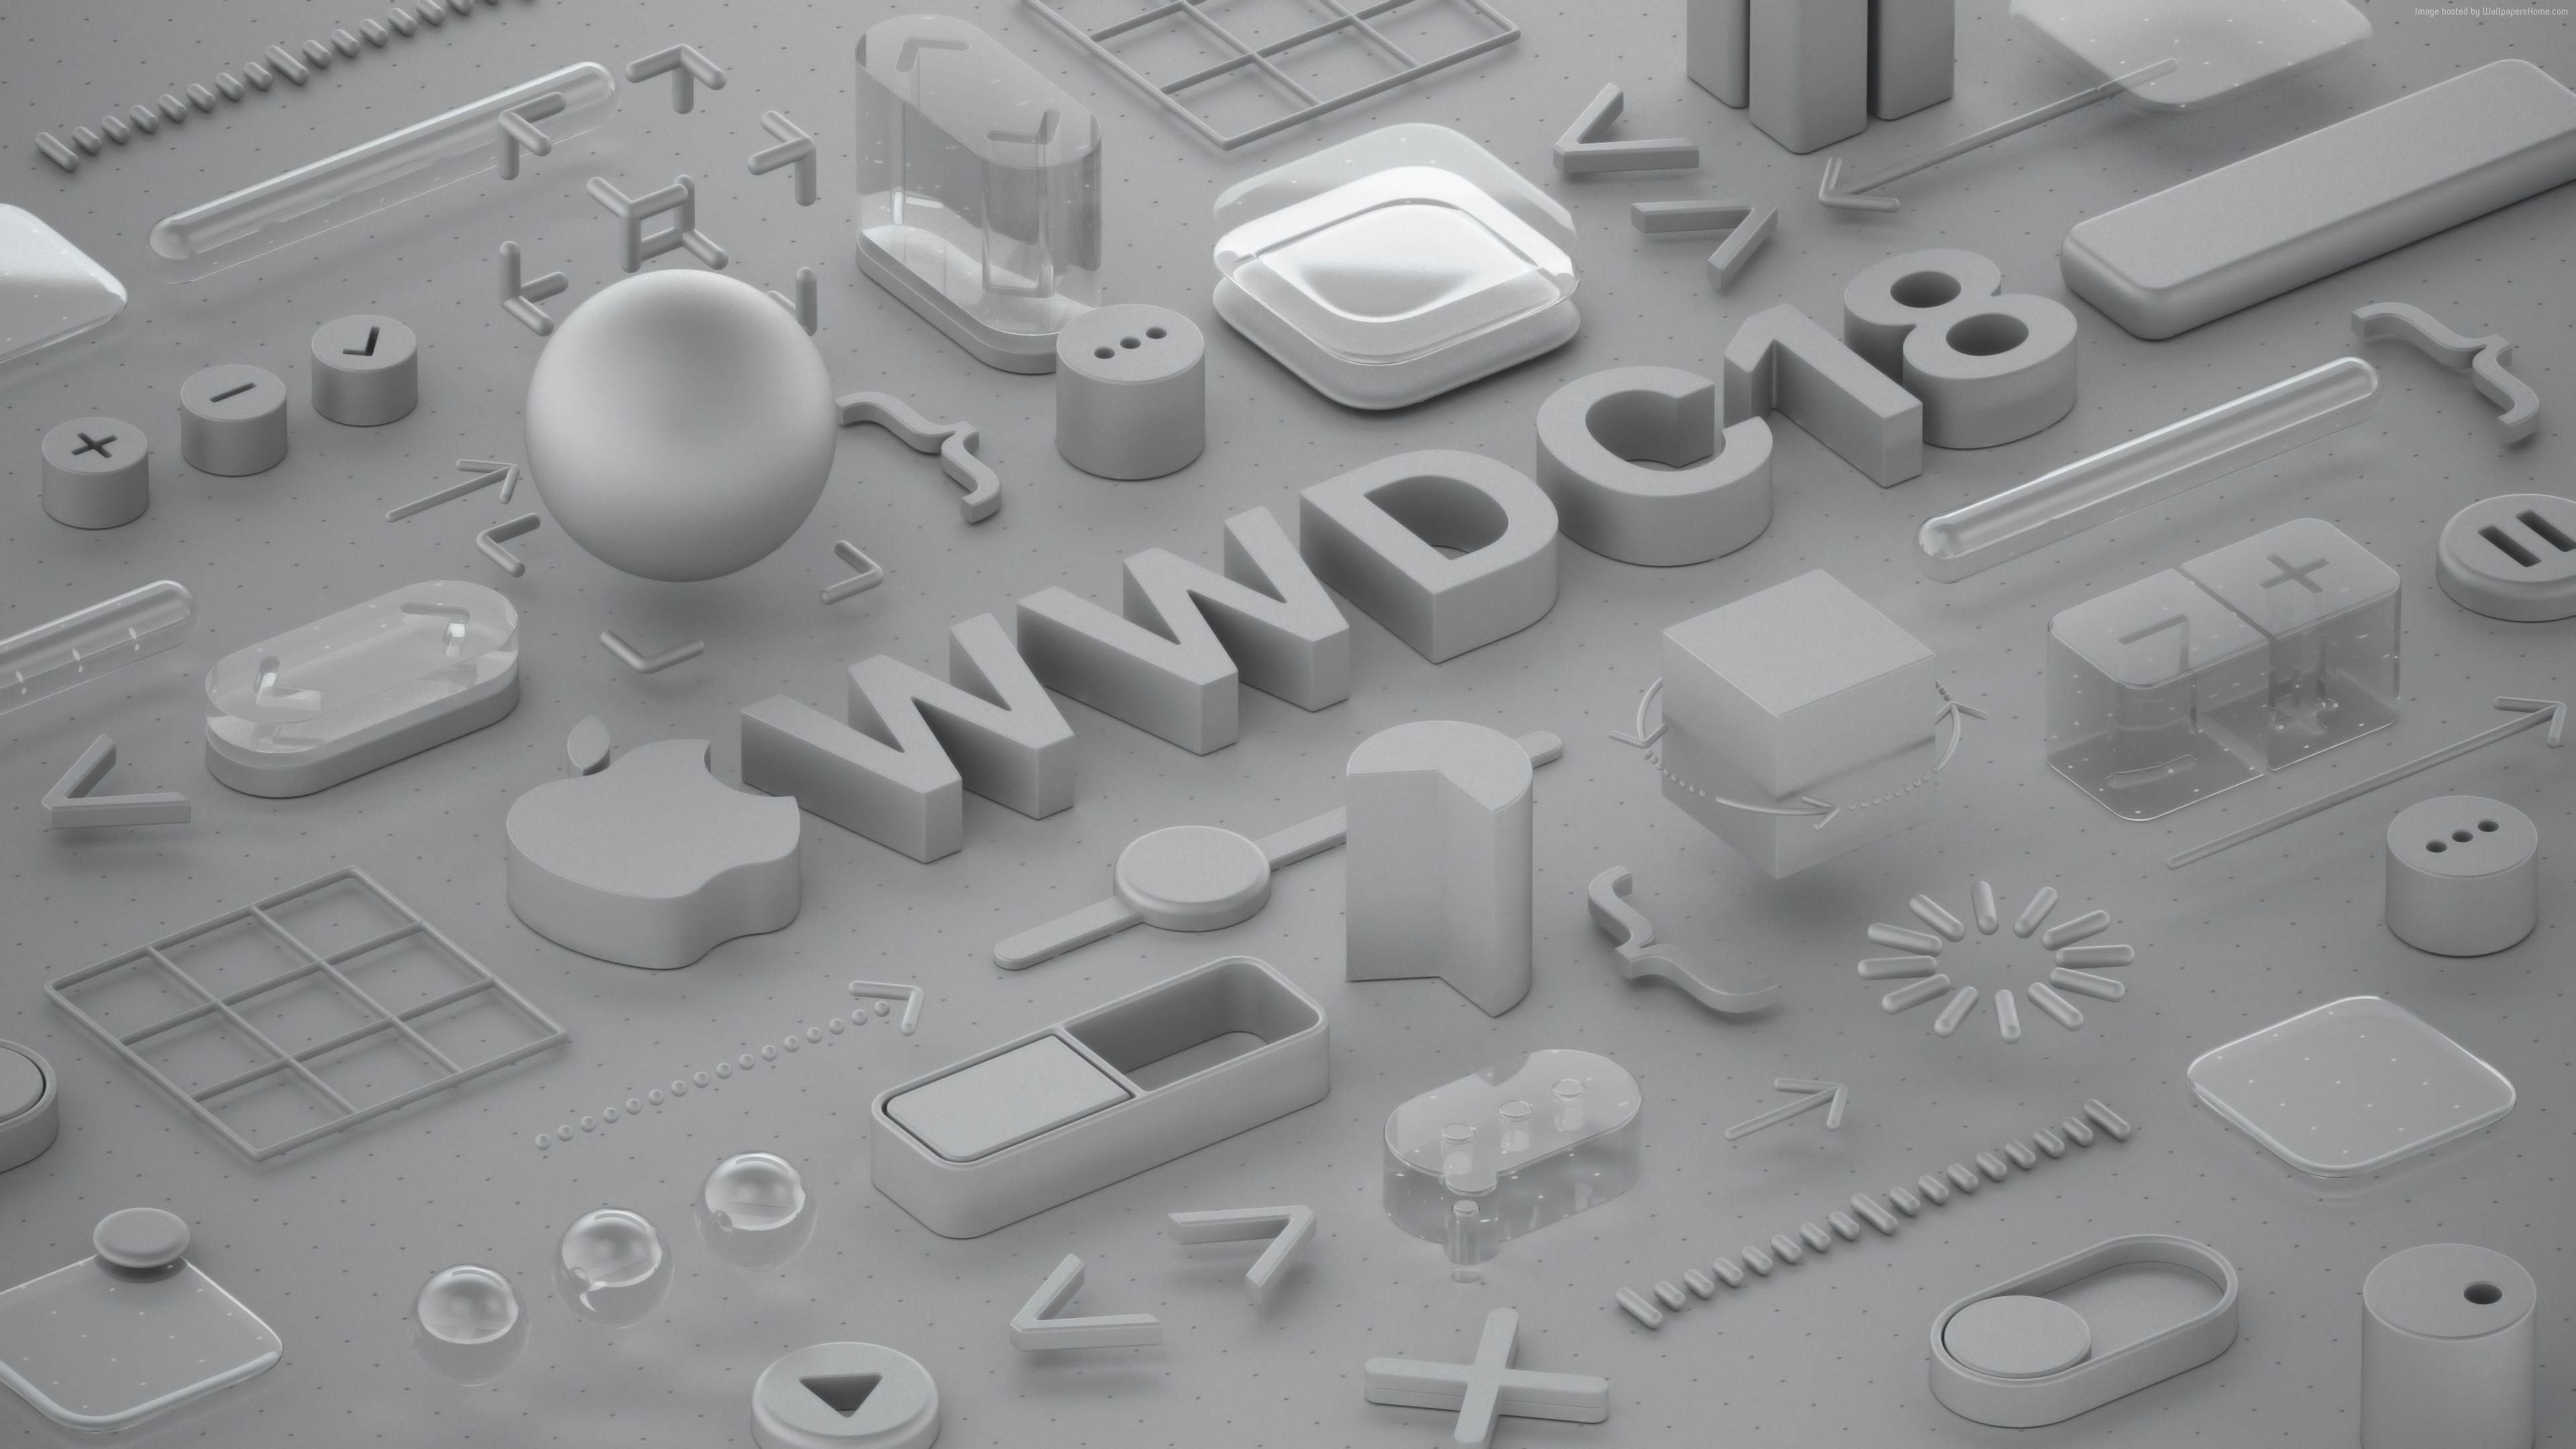 Wallpaper WWDC 2018, Matte, 3D, 4K, Hi-Tech